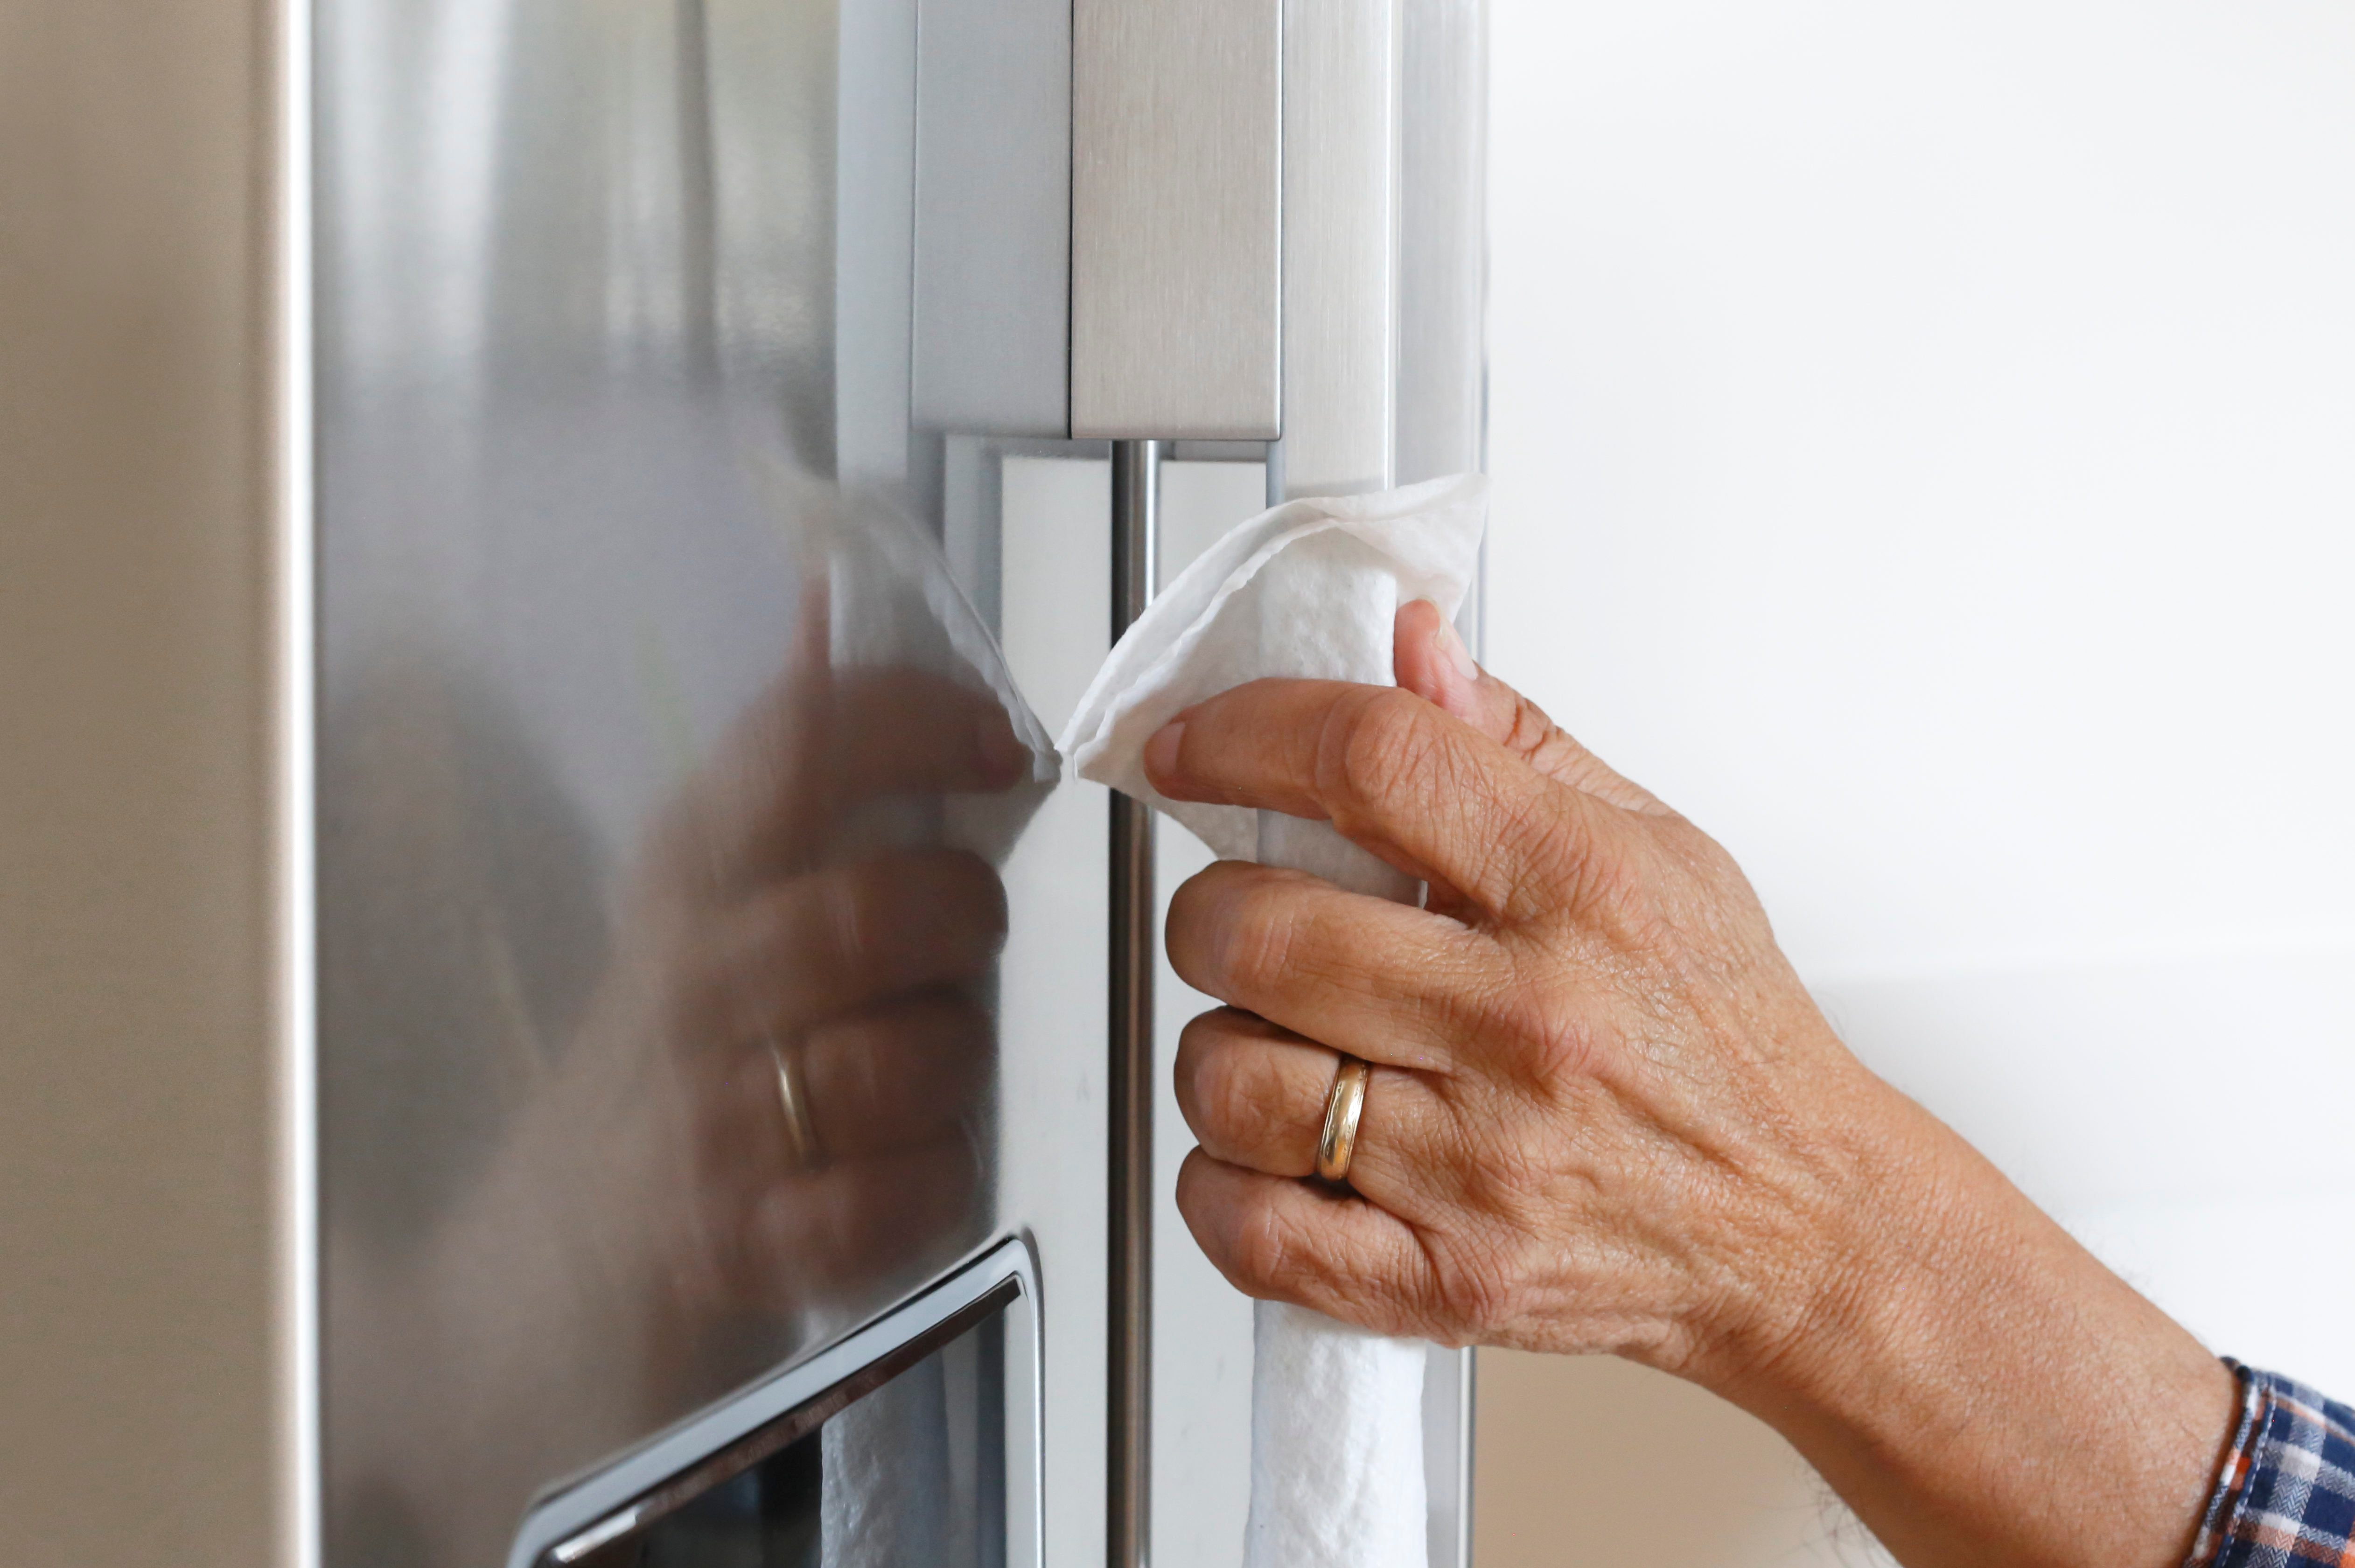 Close Up Of Man Cleaning Refrigerator With Disinfectant Wipe